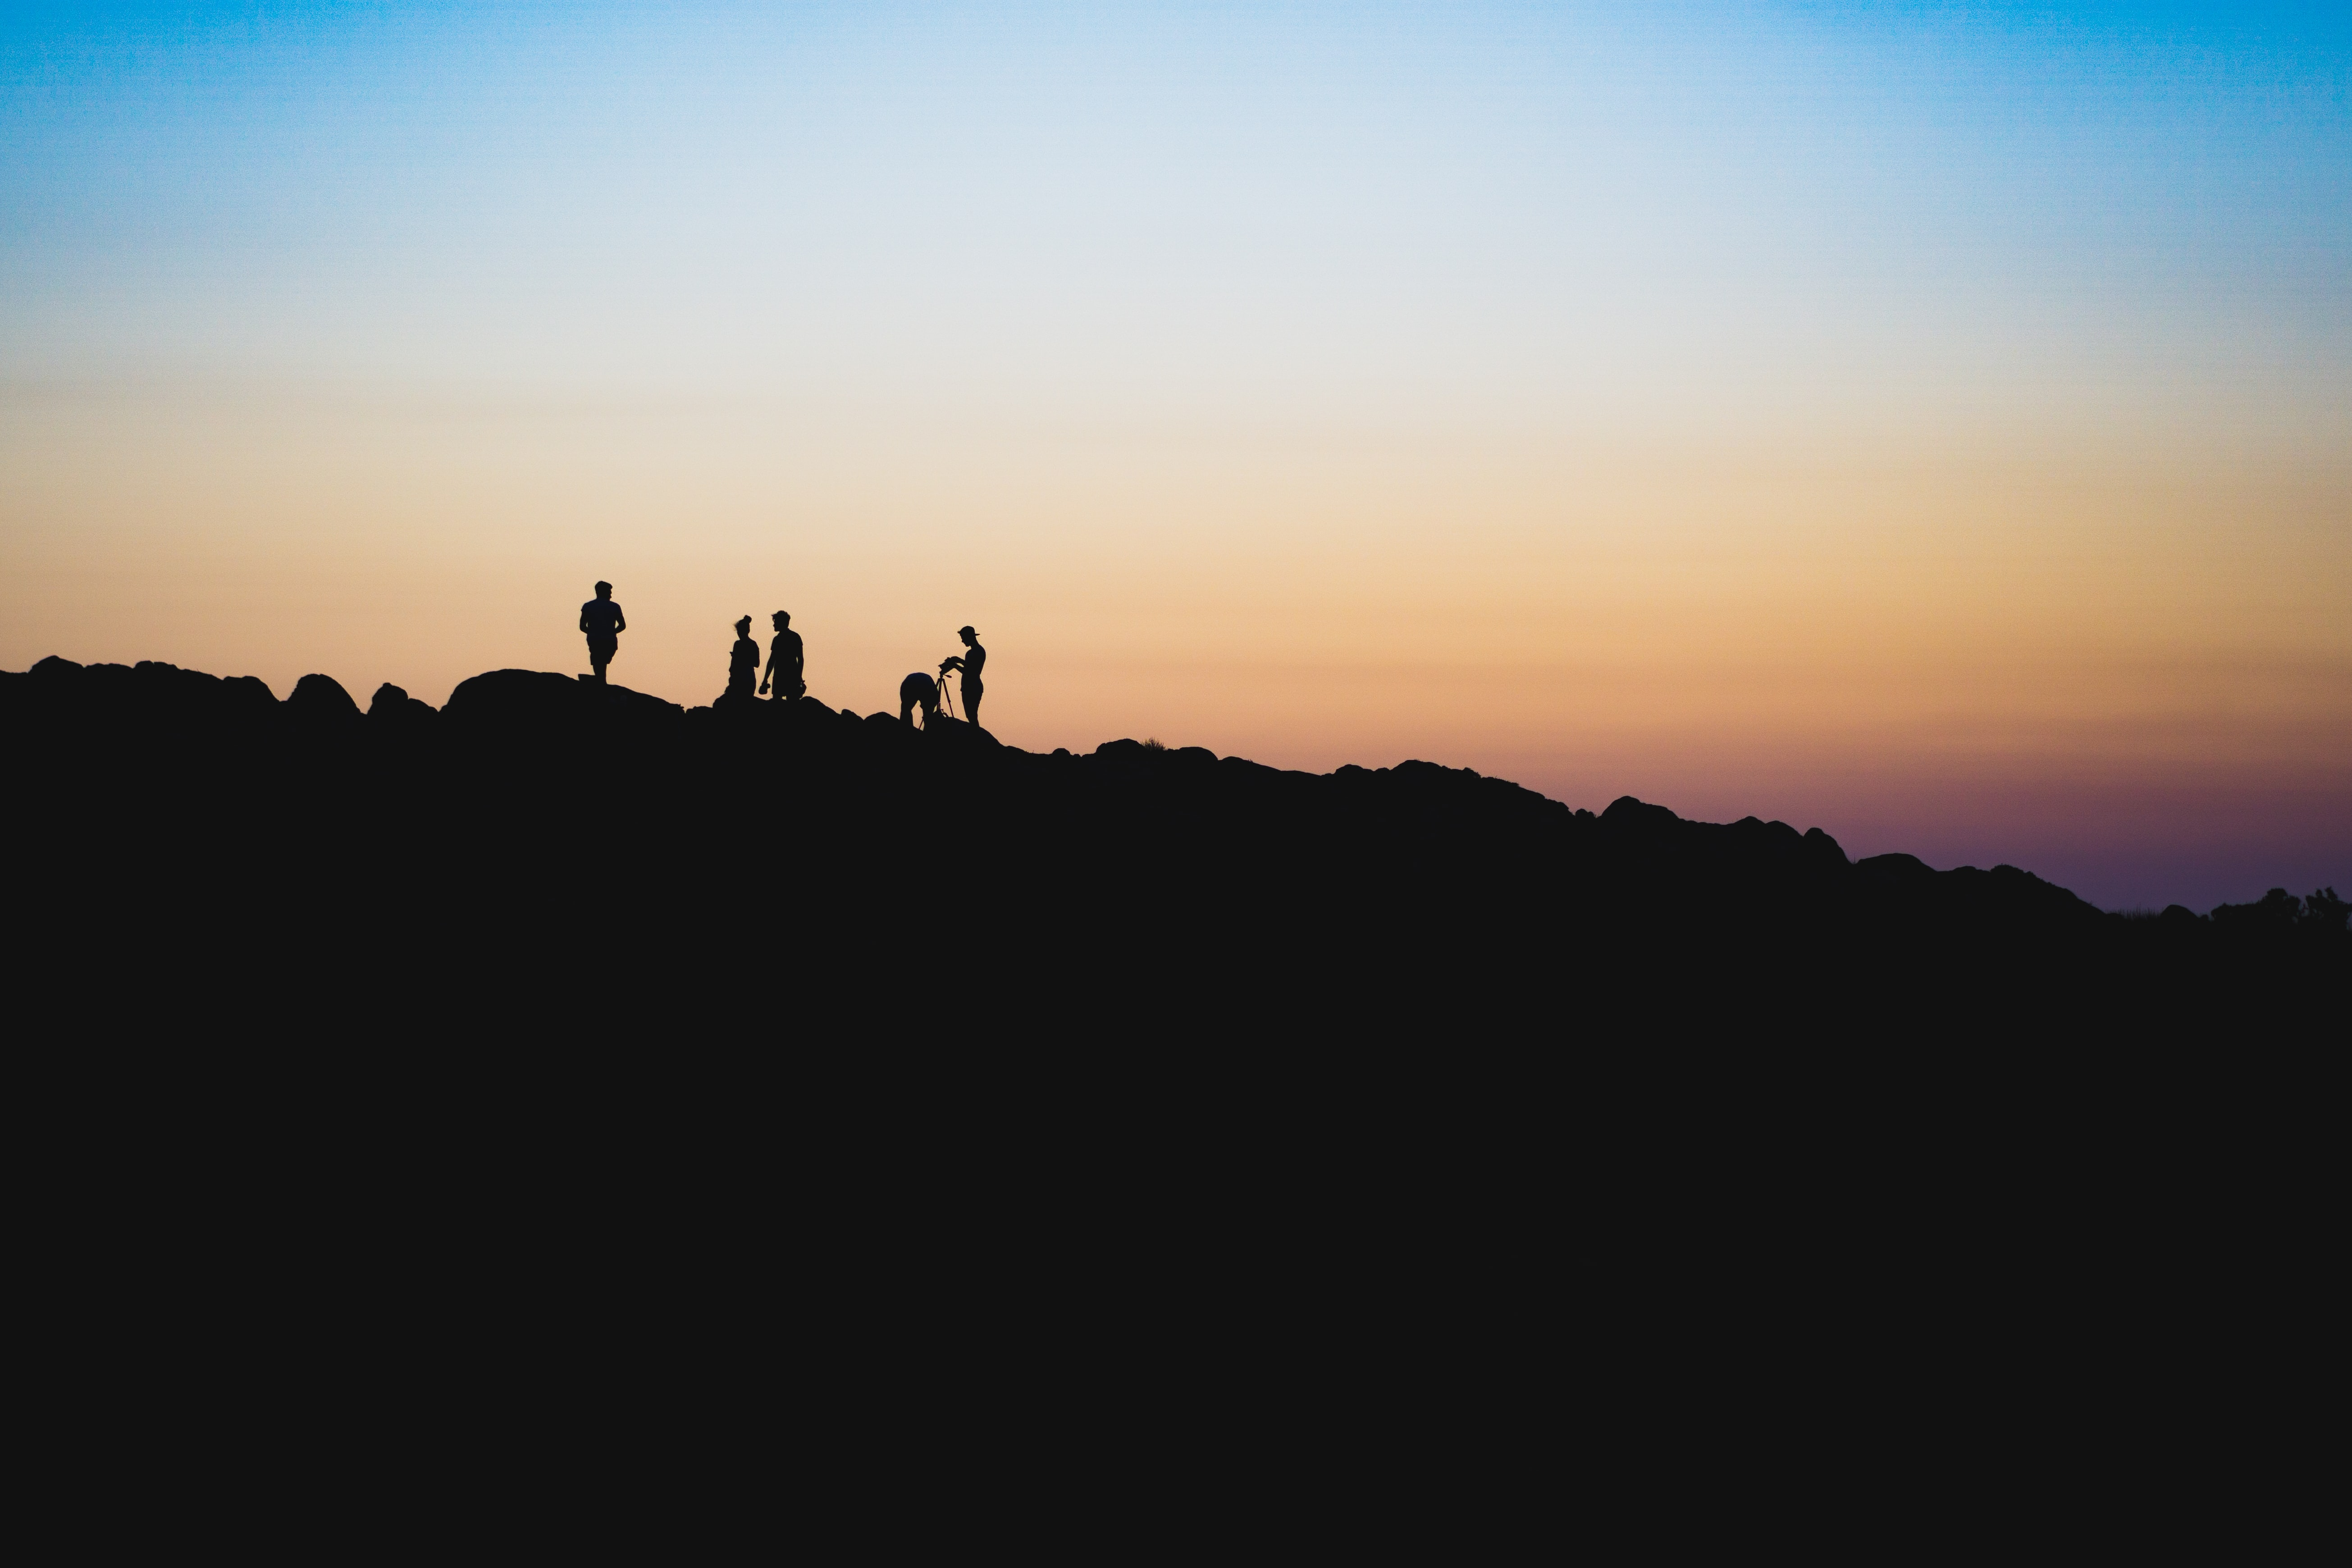 silhouette of people on a mountain